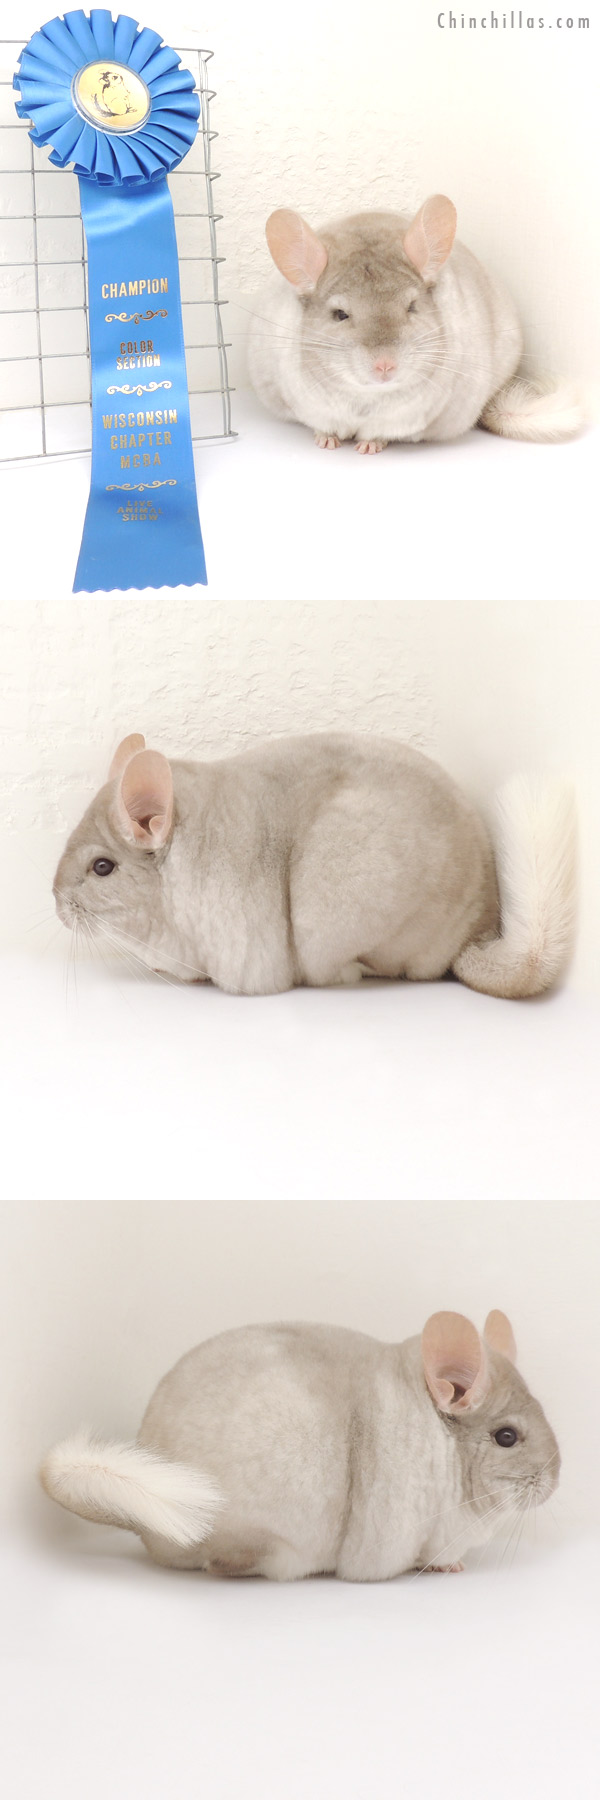 13347 Extra Large, Blocky Section Champion Pink White Female Chinchilla